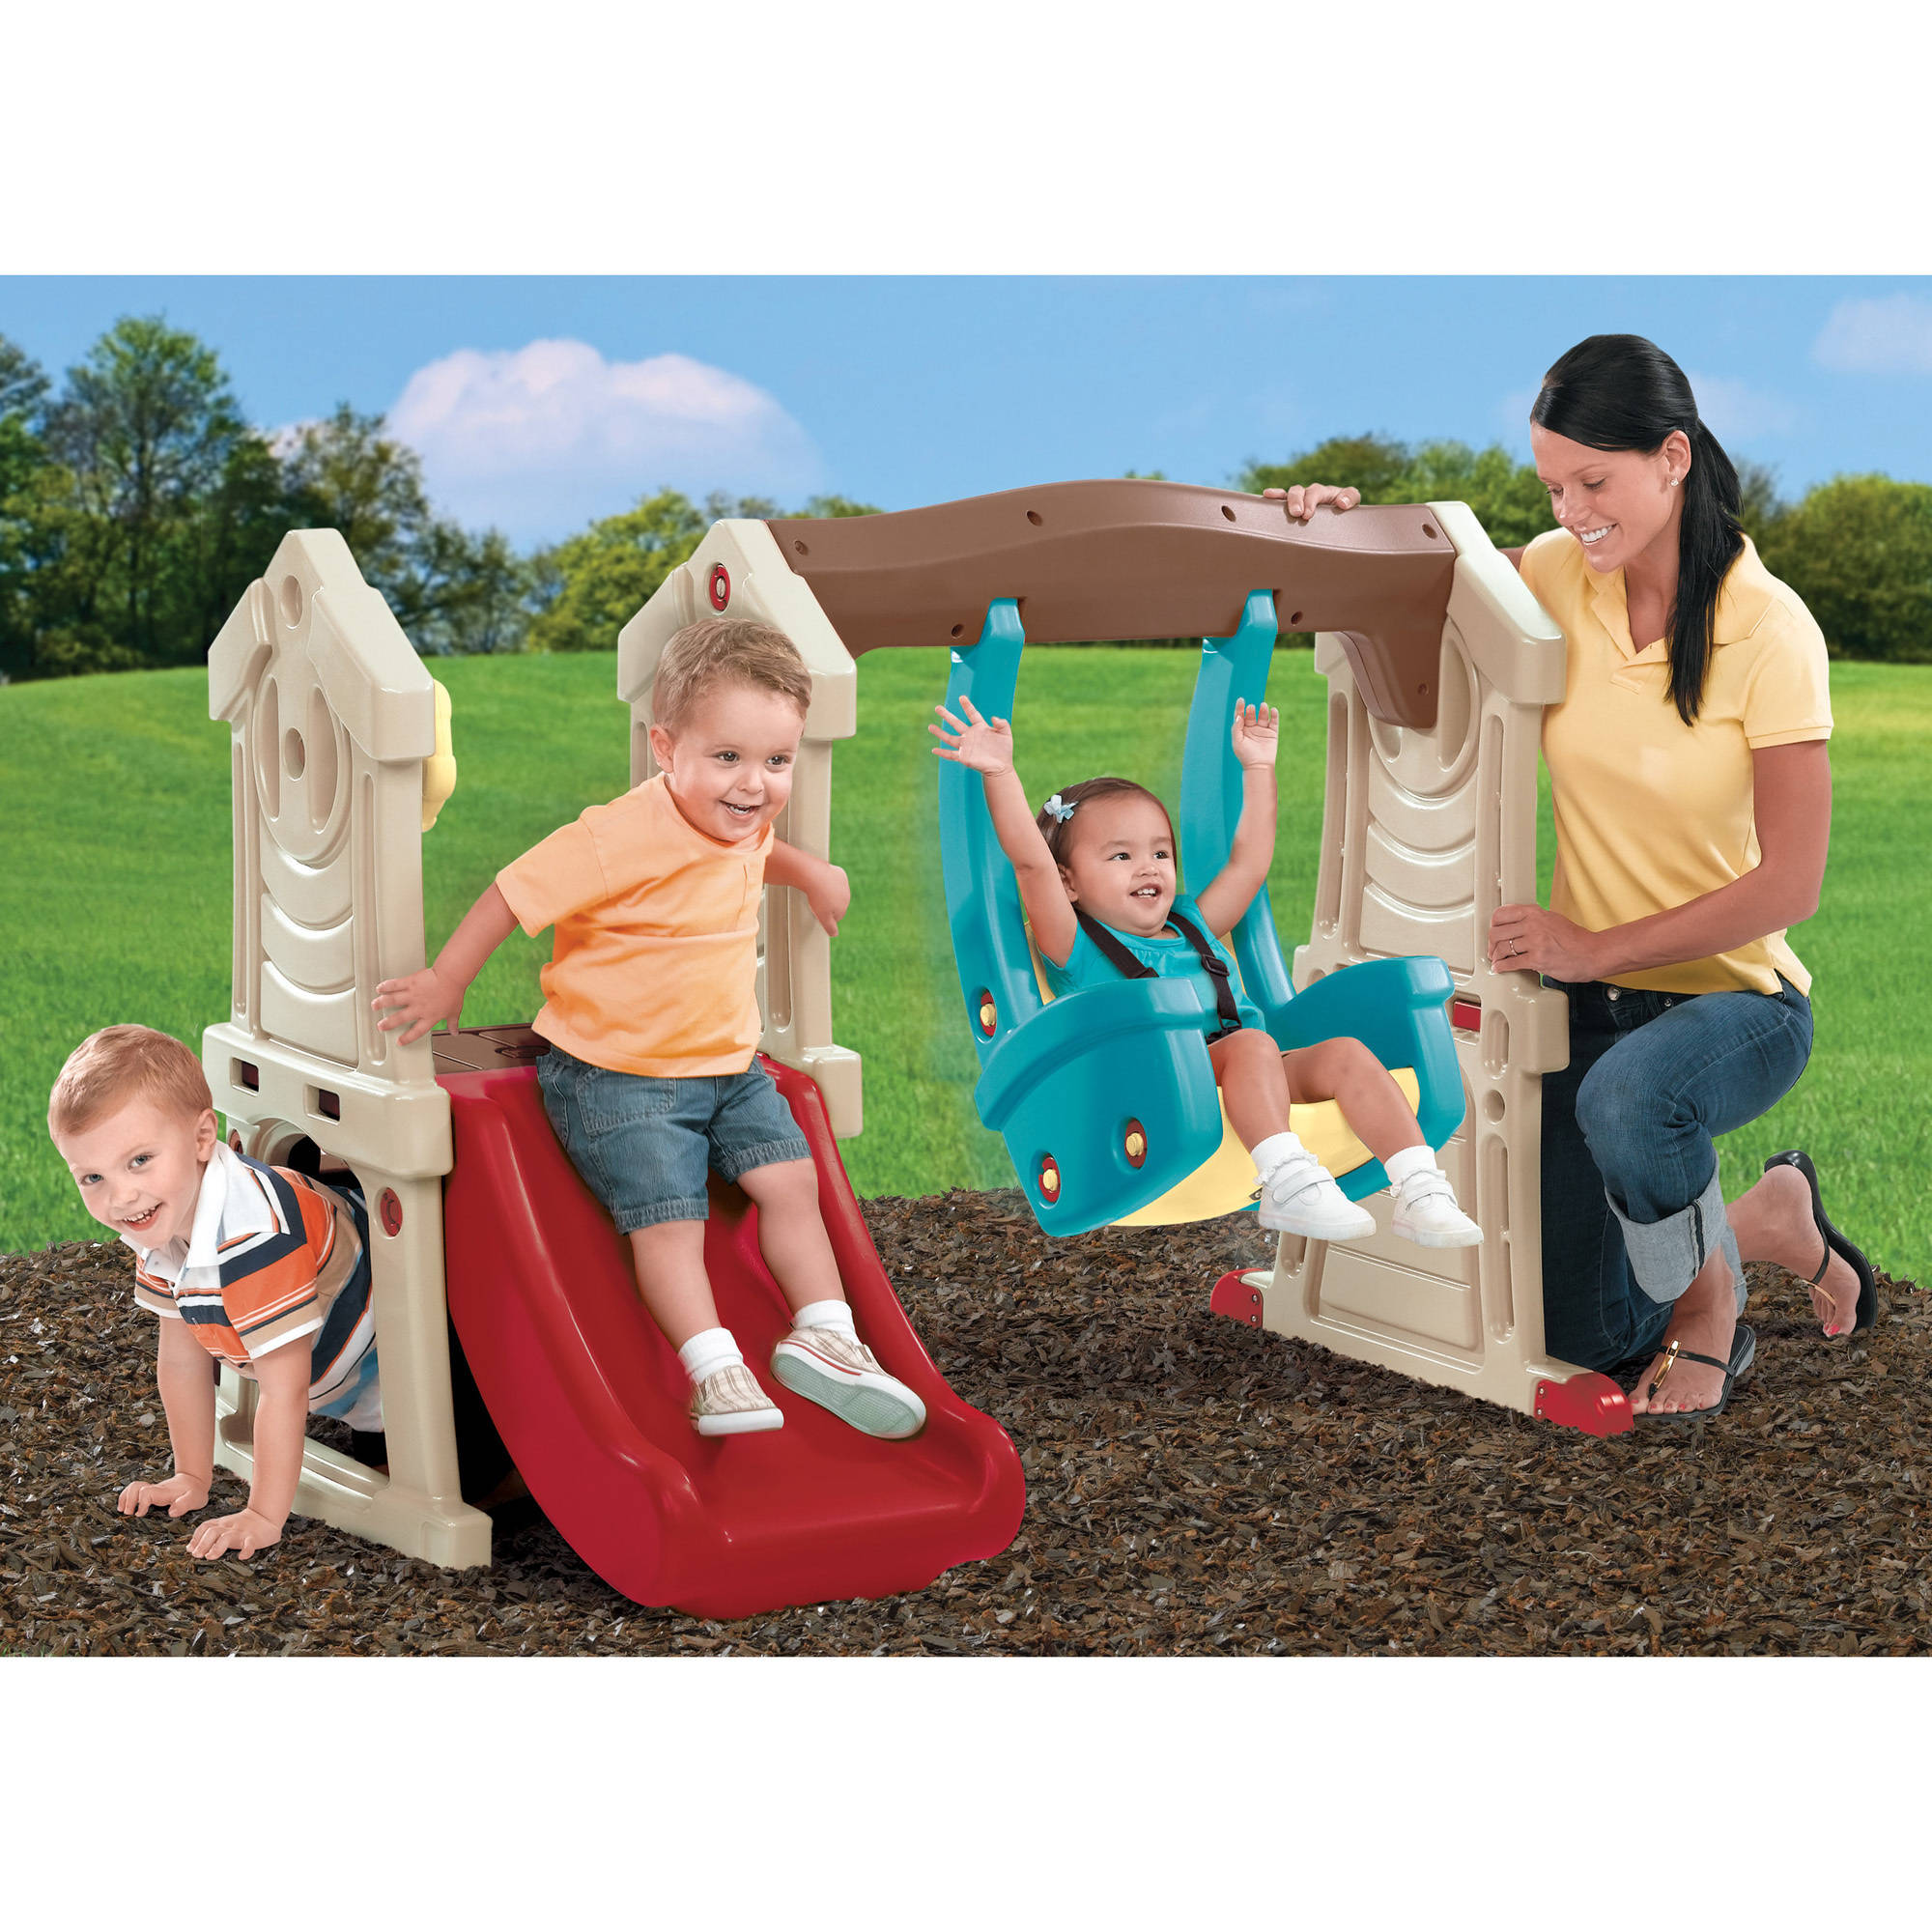 Step2 Toddler Swing and Slide Walmart